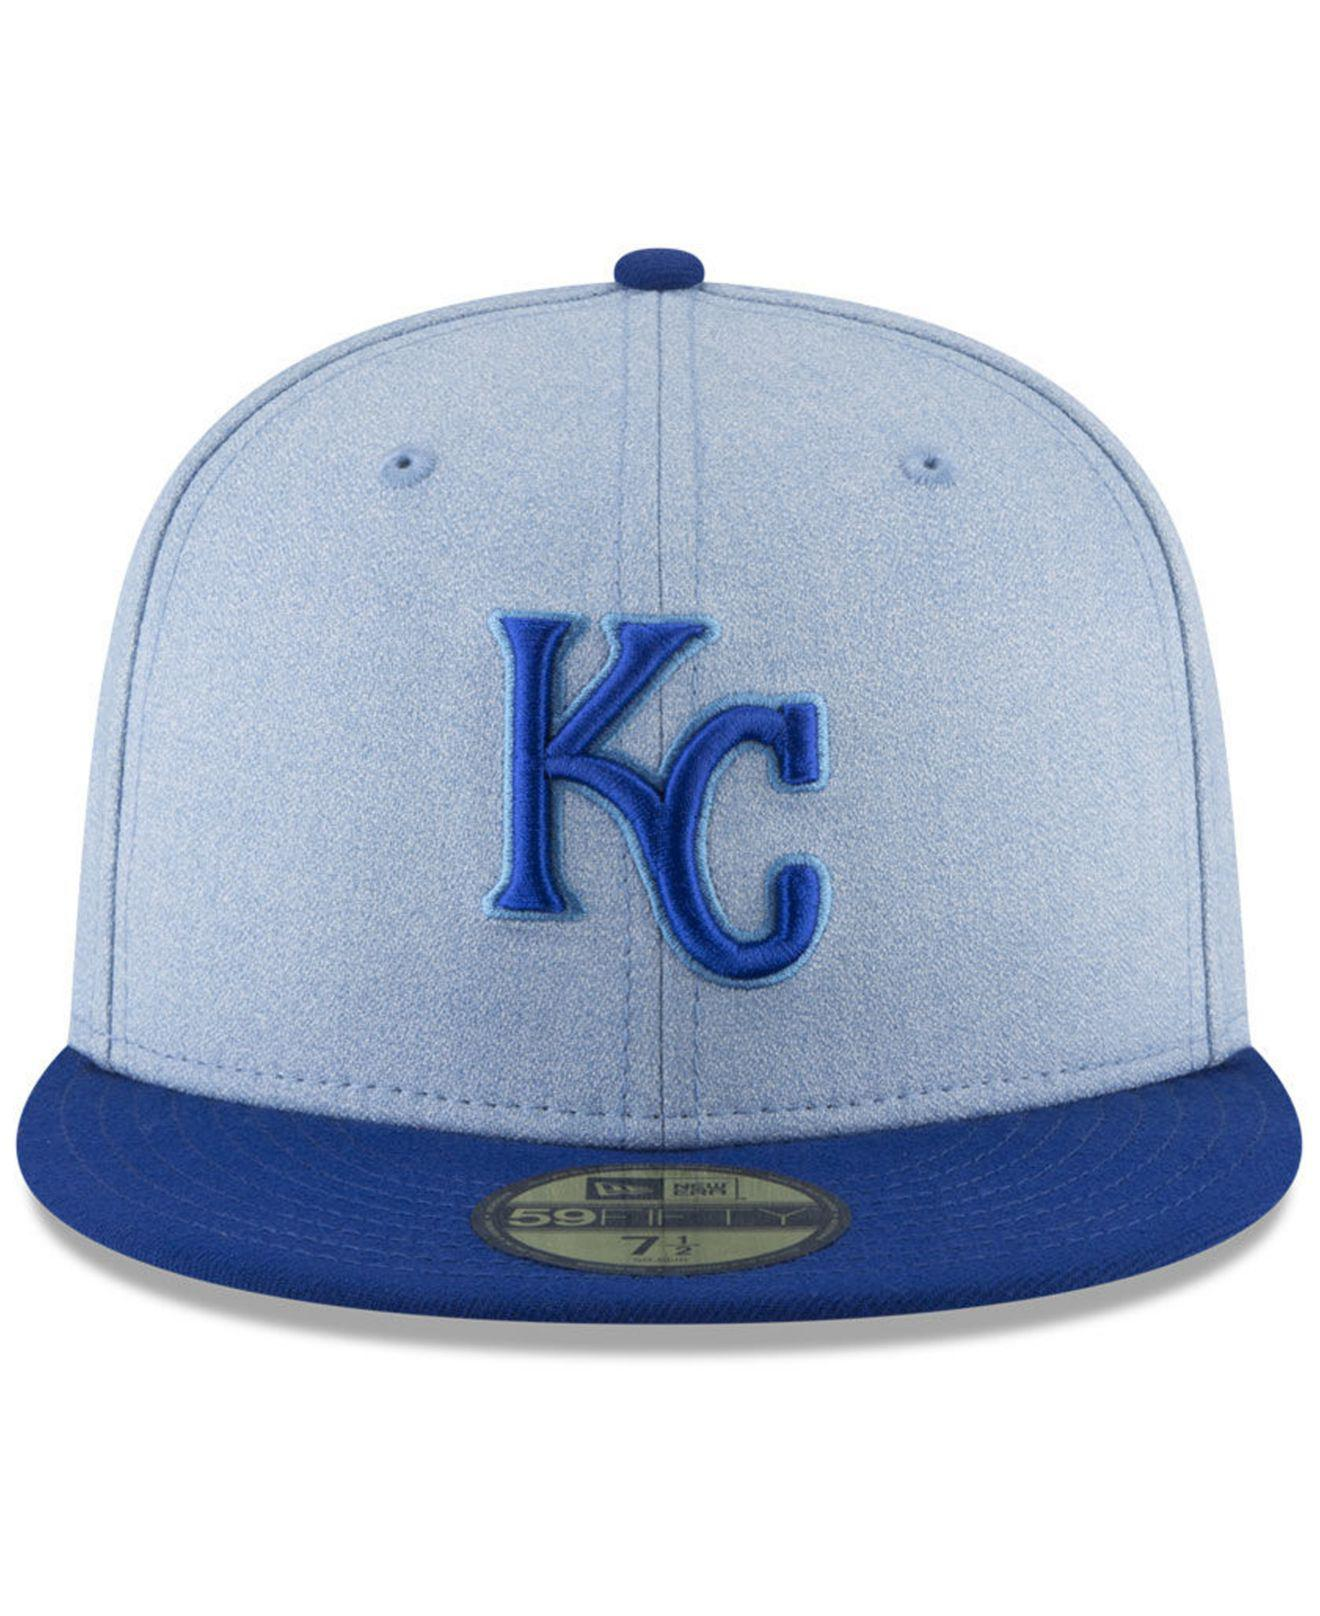 Lyst - Ktz Kansas City Royals Father s Day 59fifty Fitted Cap 2018 in Blue  for Men a801f5141bd6